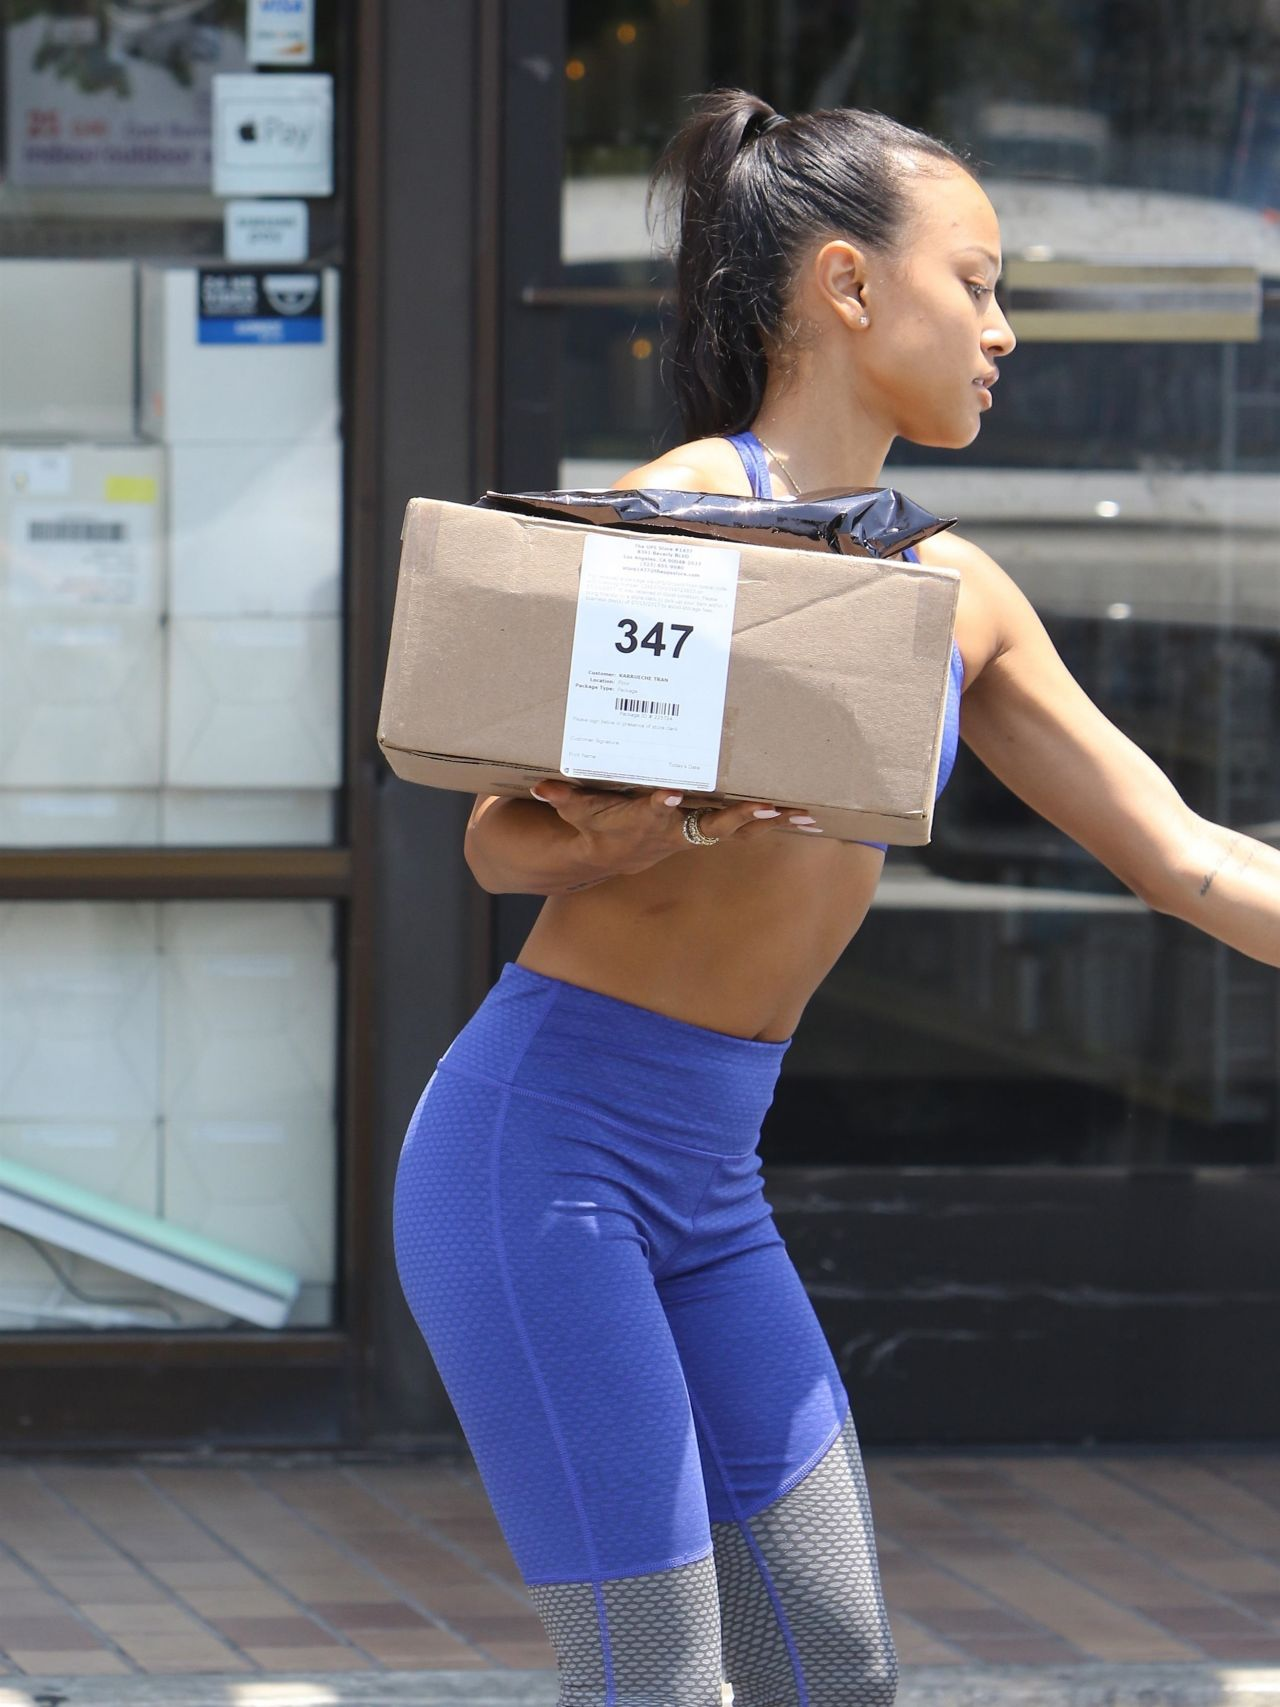 Karrueche tran in spandex out in west hollywood - 2019 year